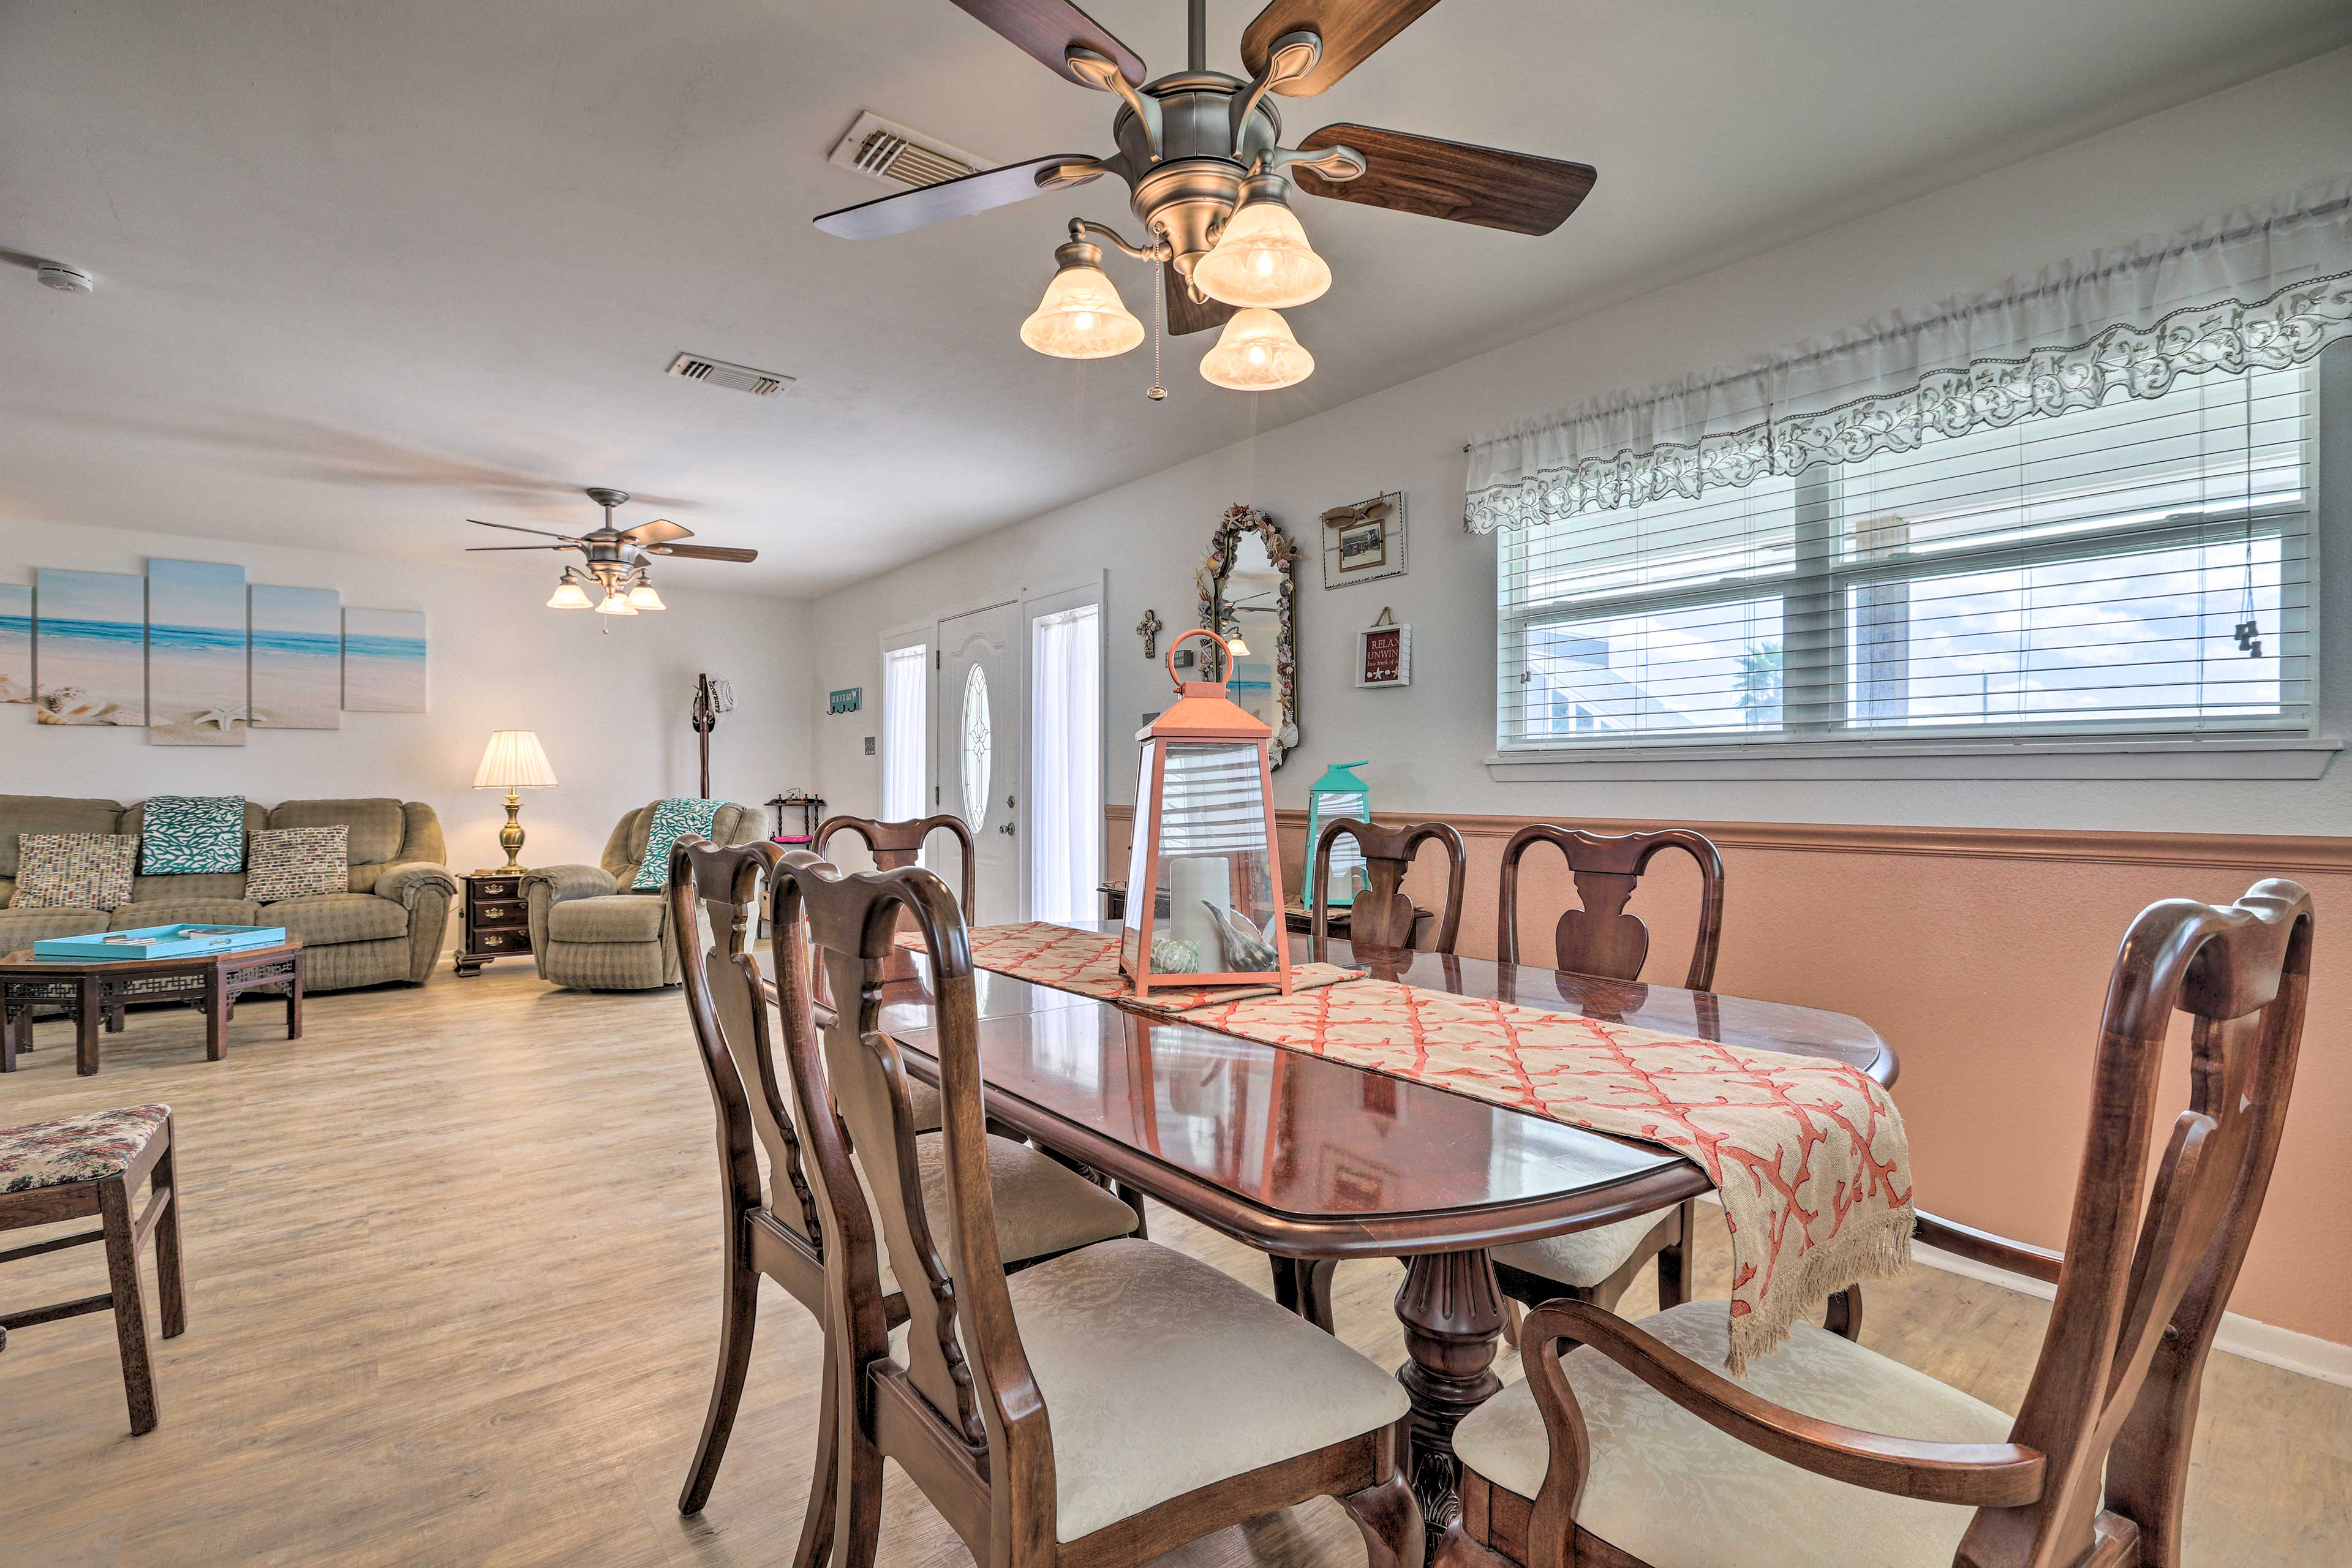 The open layout of this home is the perfect setting for enjoying group meals.